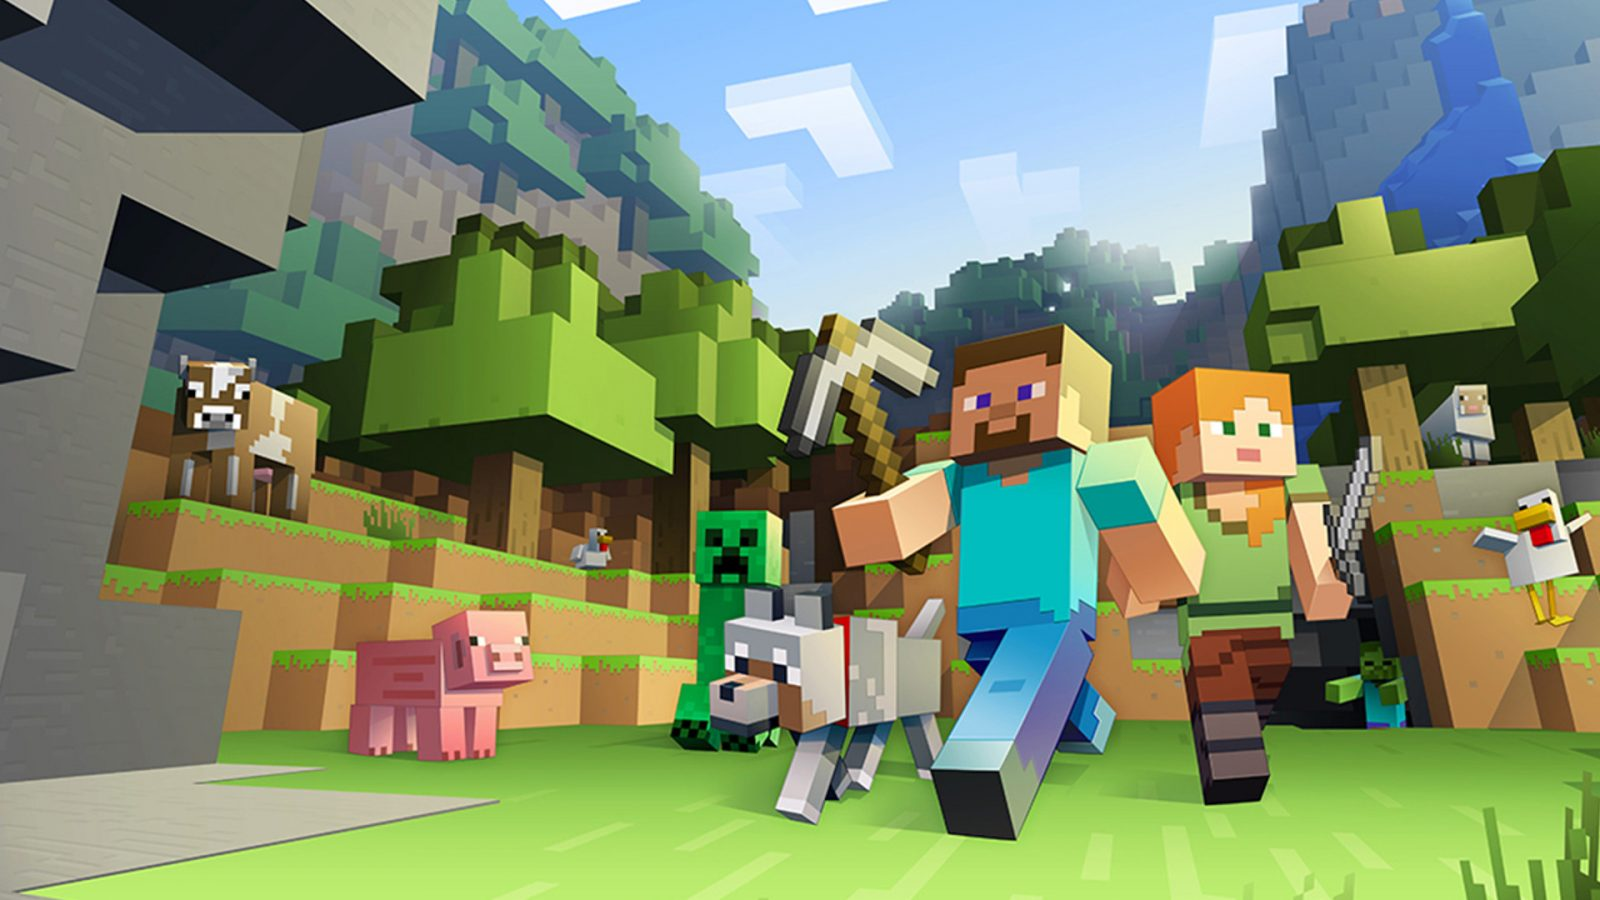 You can finally play Minecraft with your friends on PS4